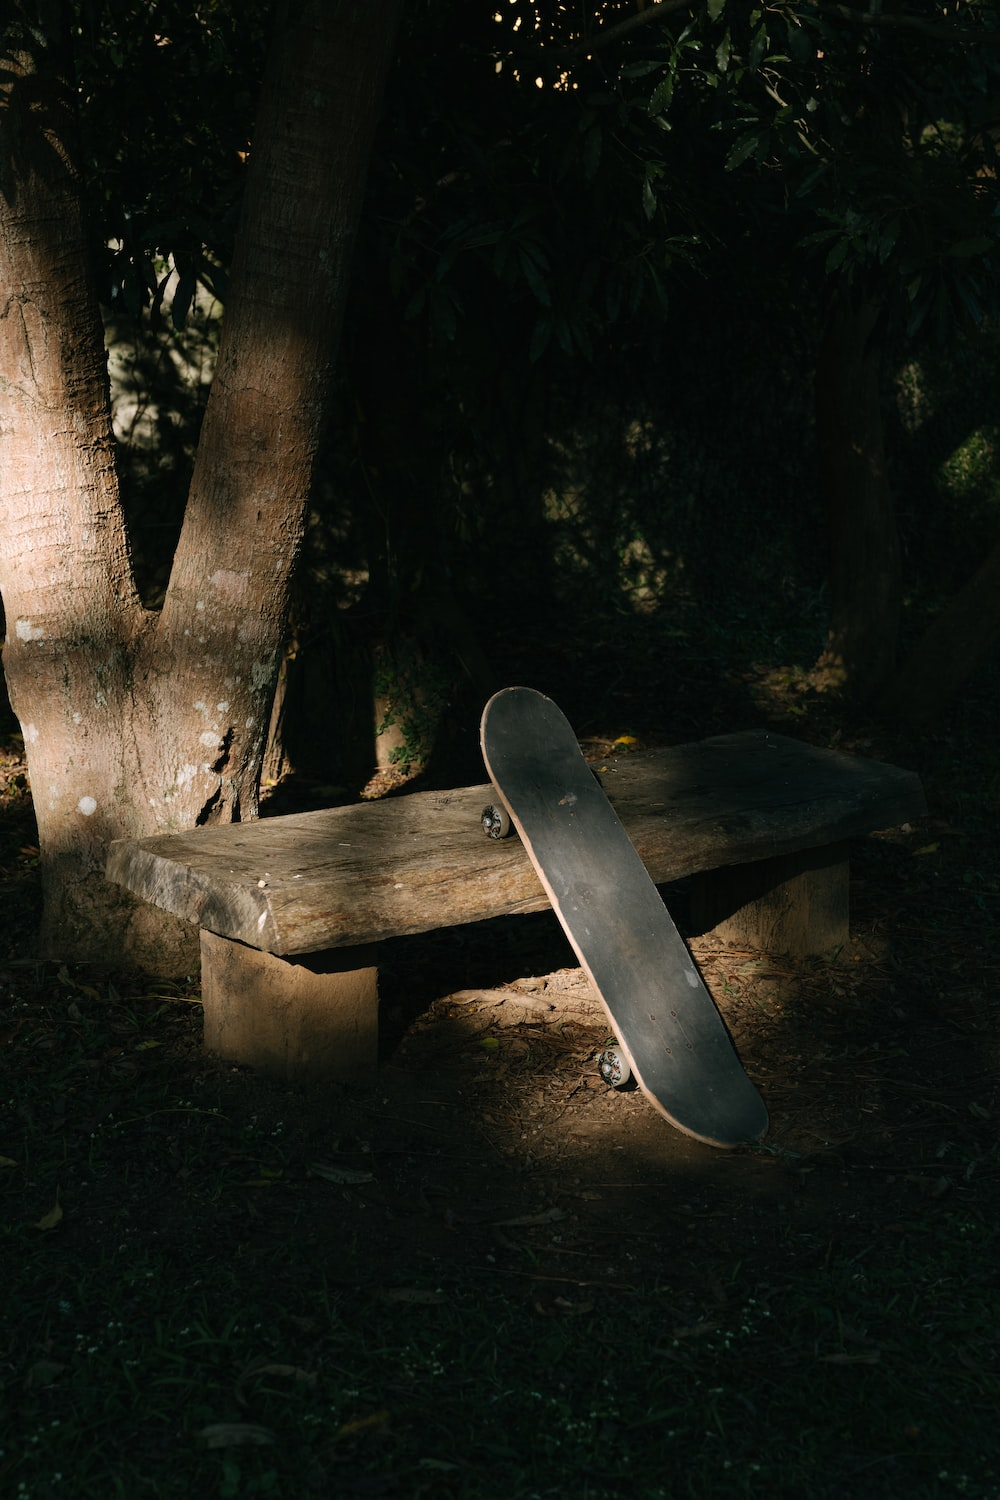 brown wooden picnic table surrounded by green trees